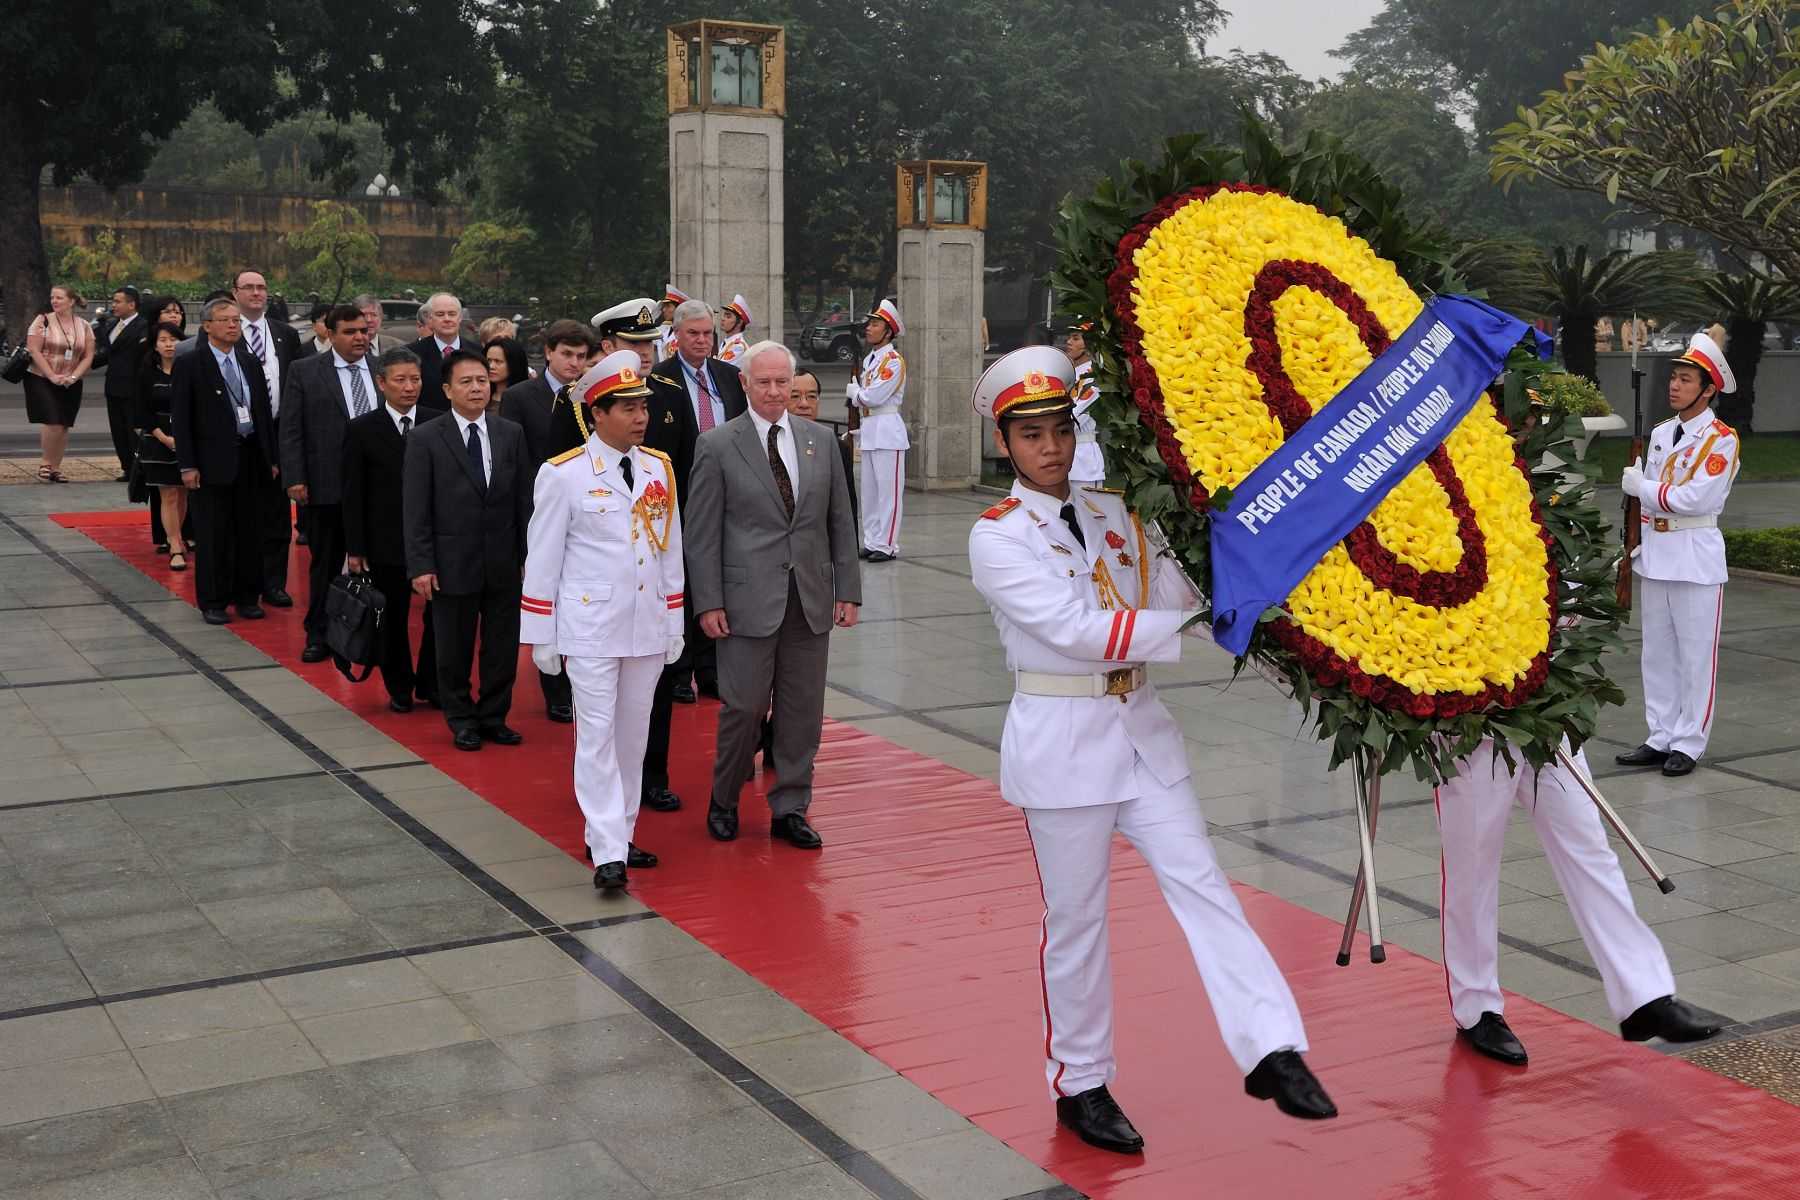 His Excellency took part in a wreath-laying ceremony at the Monument of National Heroes and Martyrs in Hanoi, Vietnam.